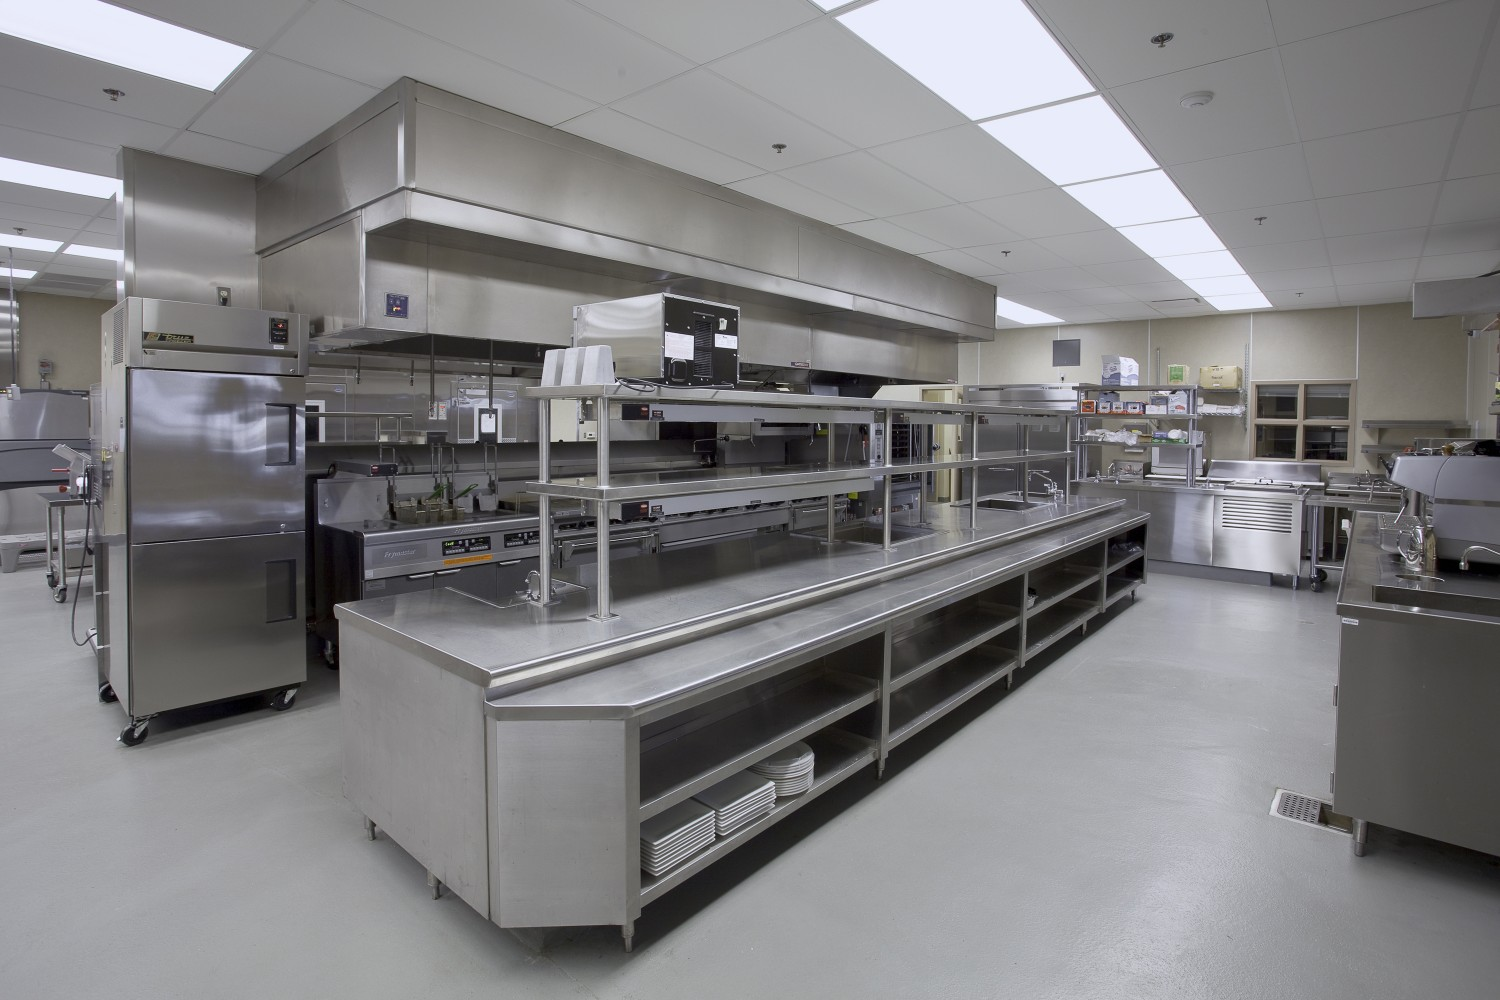 Commercial Kitchens For Rent In Toronto In Season